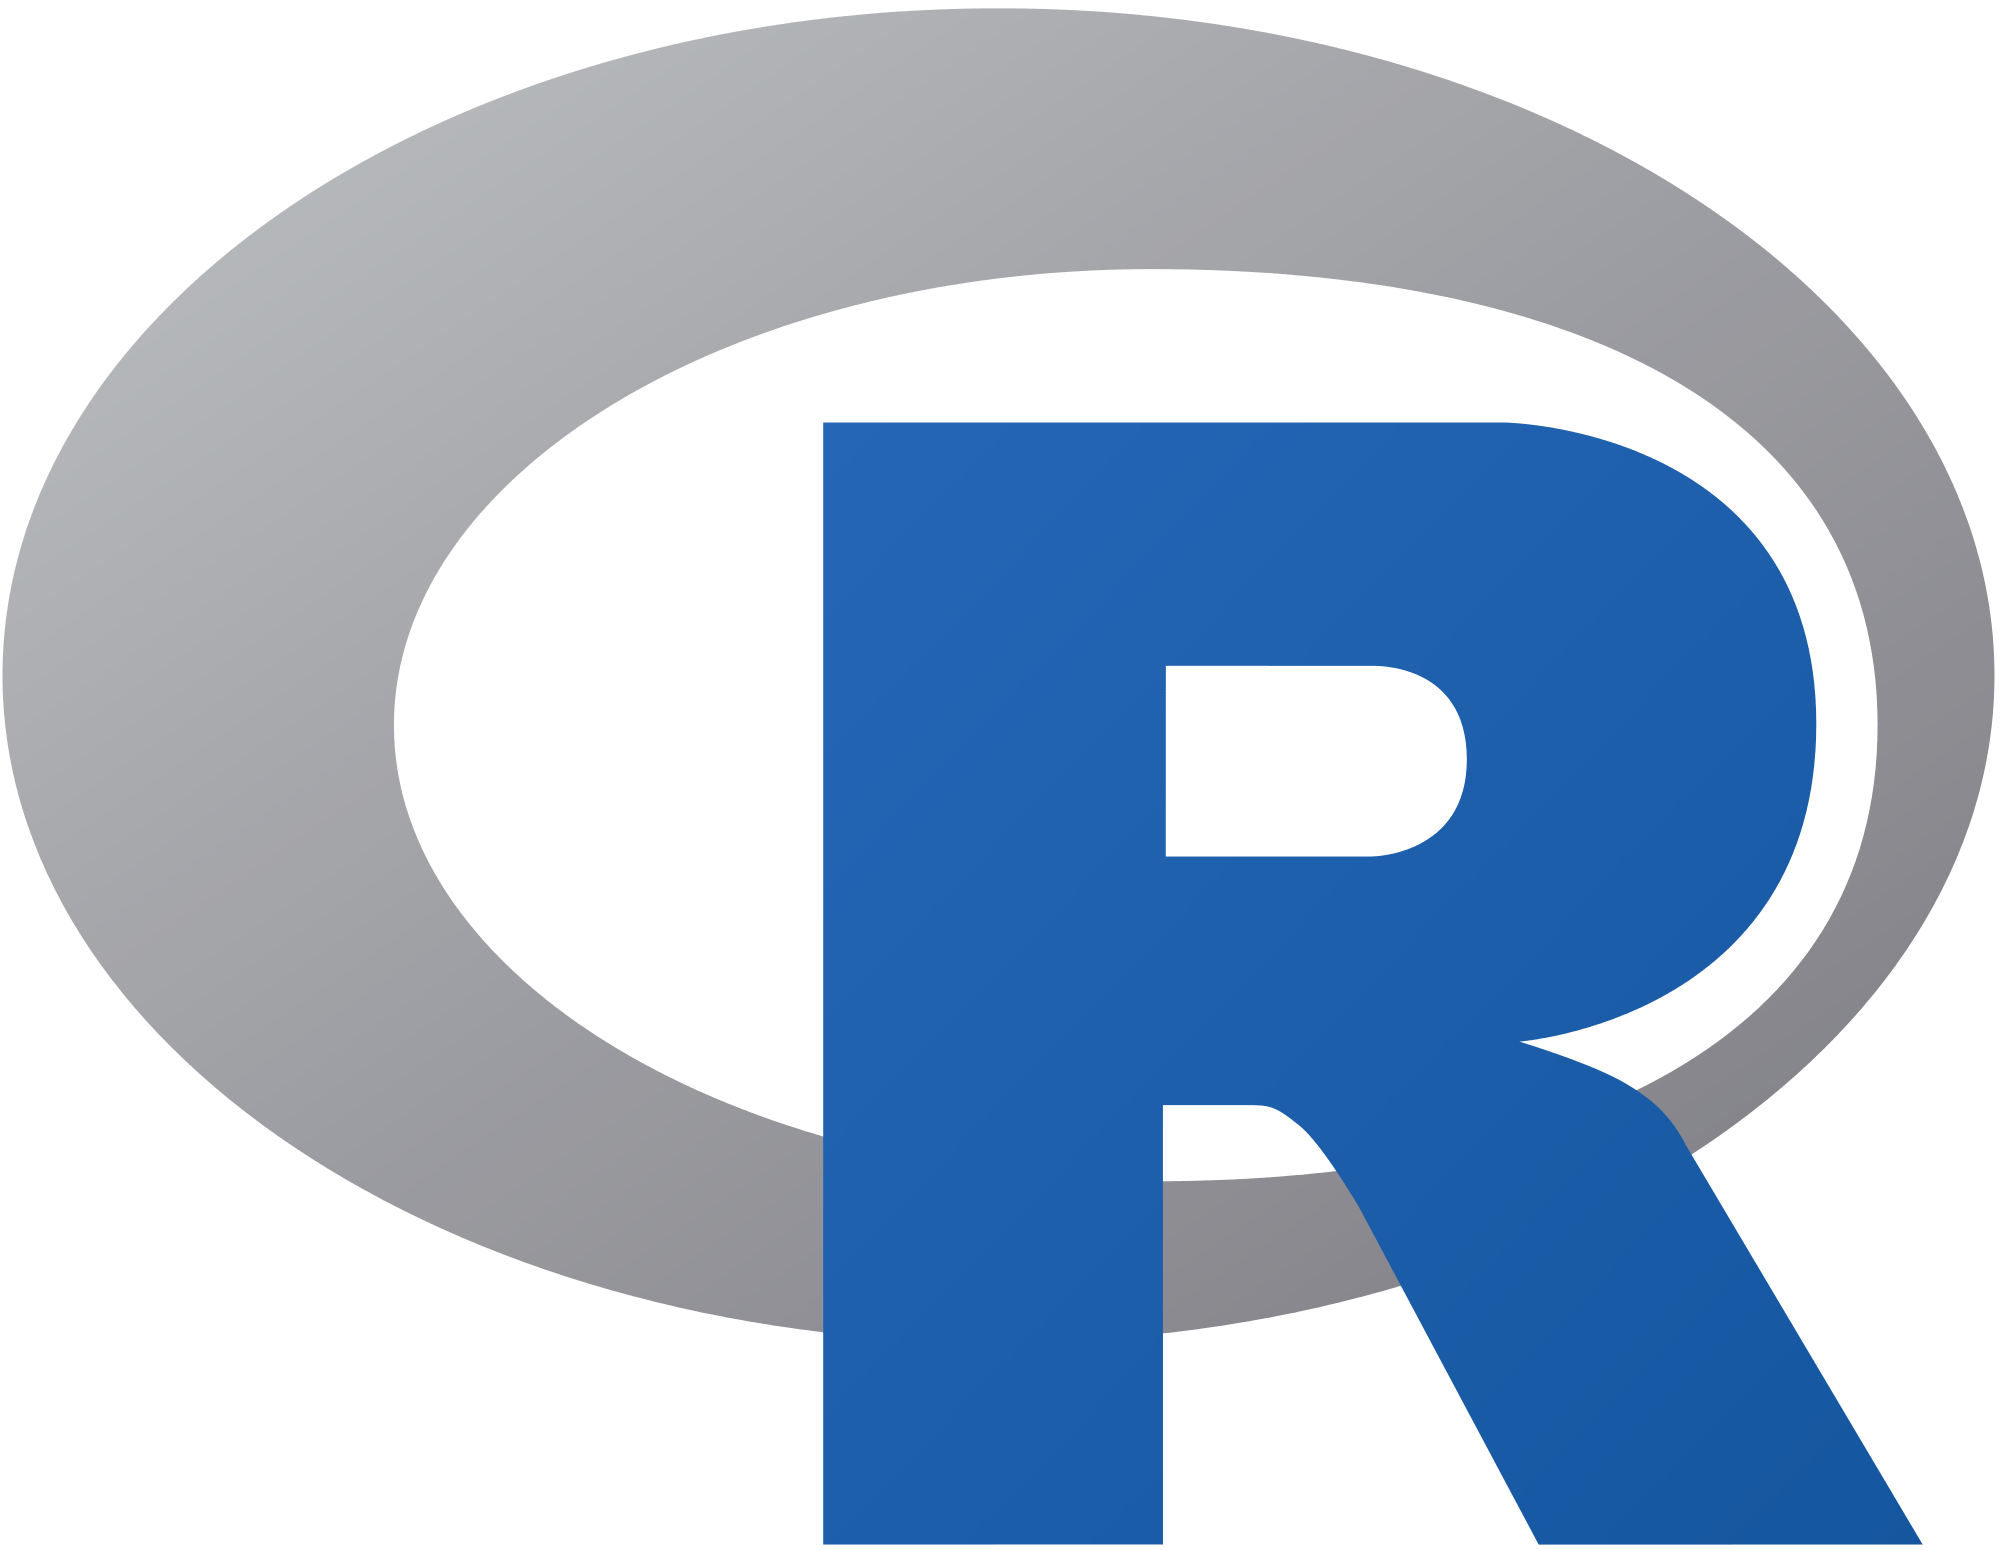 Get familiar with the. R clipart rated r